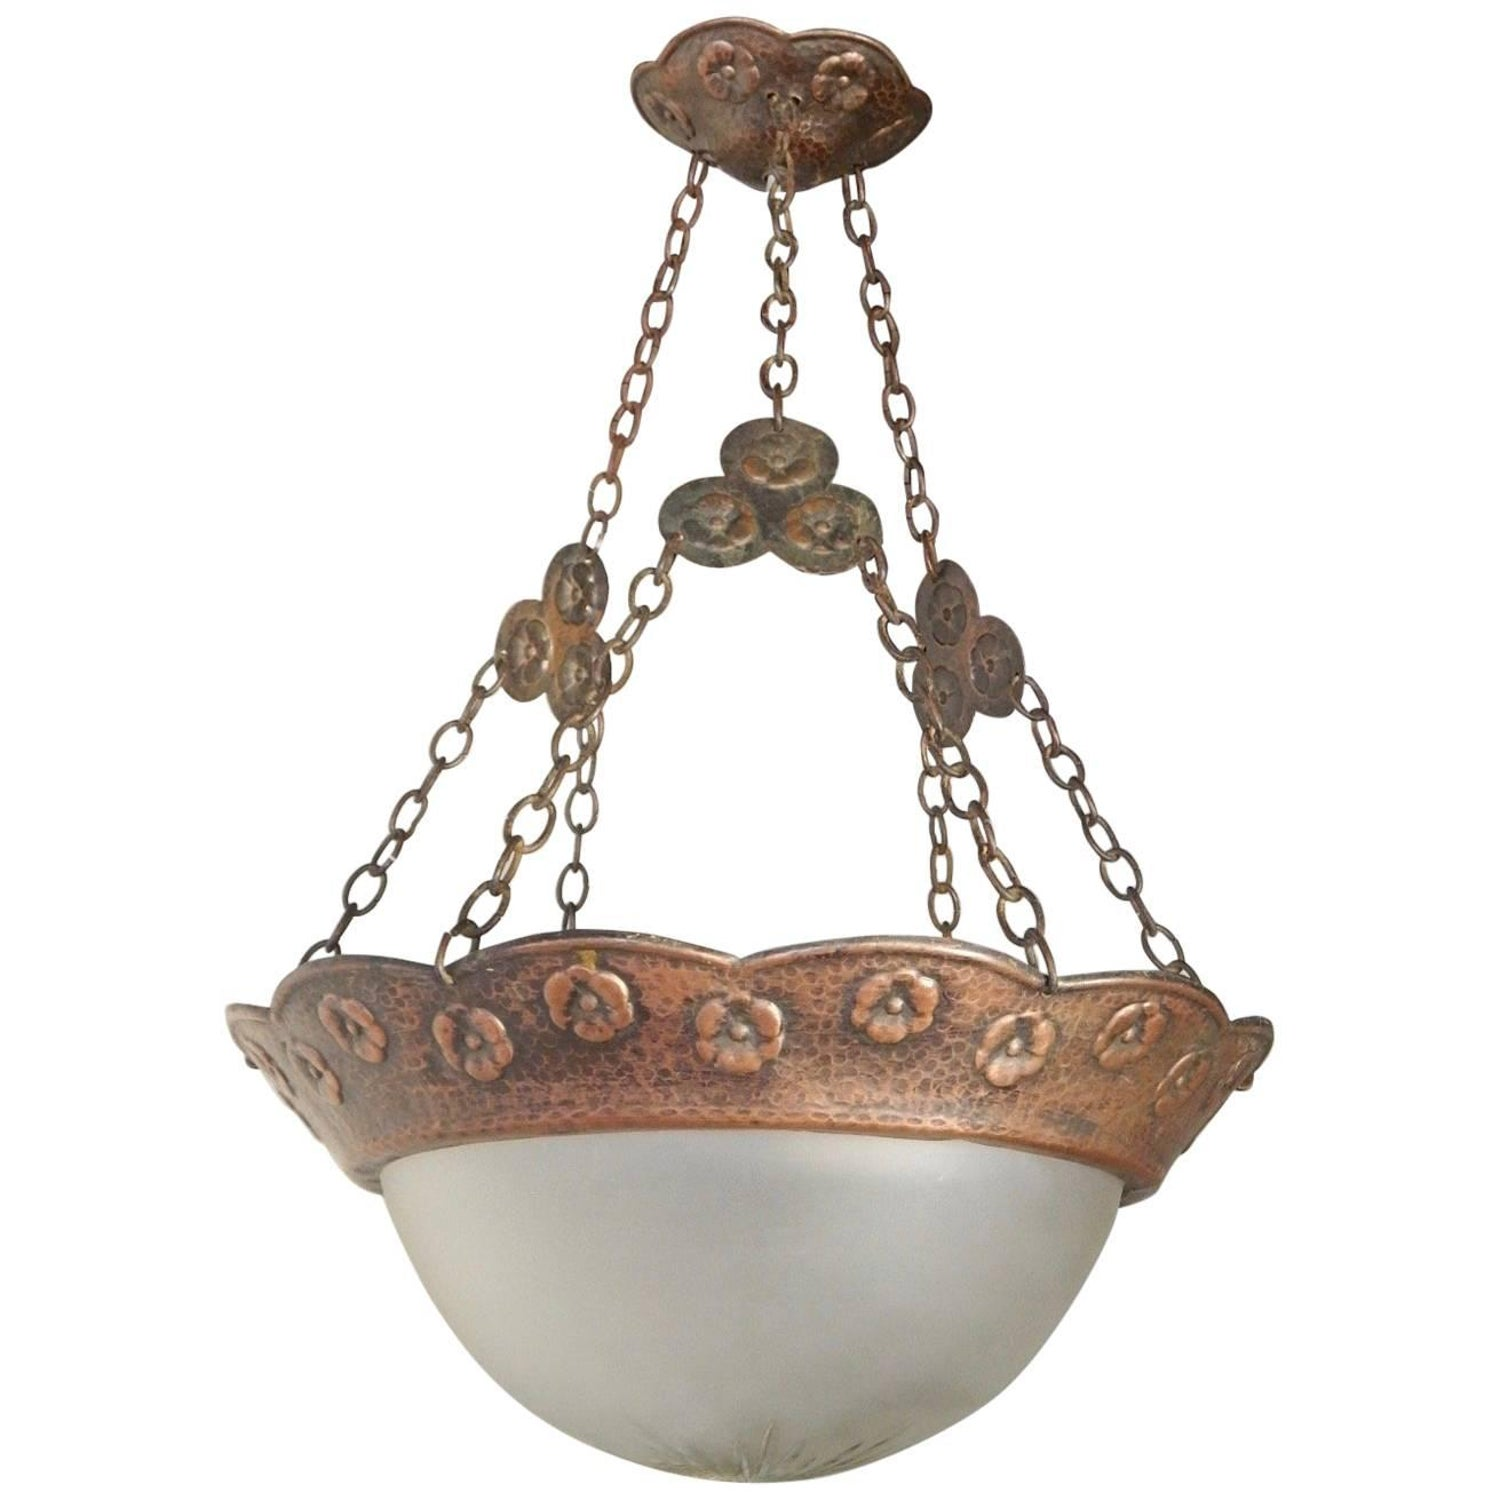 Arts and crafts lighting light fixtures 341 for sale at 1stdibs swedish arts amp crafts hammered copper hanging light fixture circa 1910 arubaitofo Choice Image